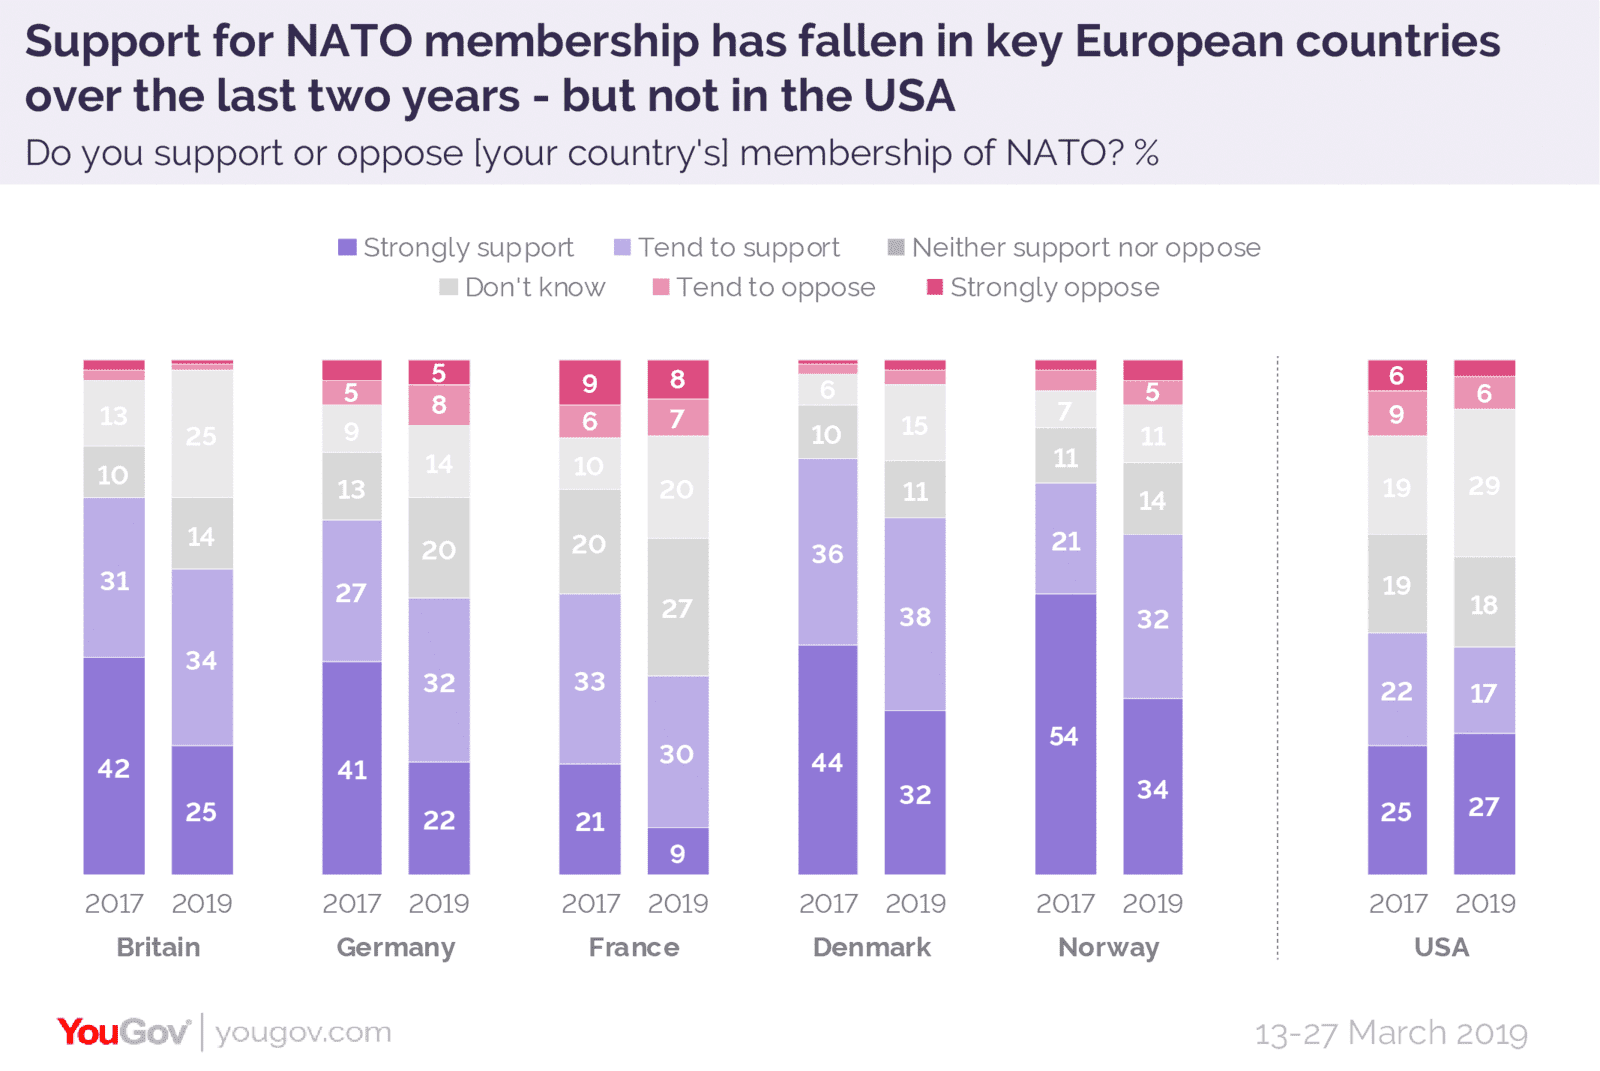 Support-for-NATO-membership-has-fallen-in-key-European-countries-Kritisches-Netzwerk-North-Atlantic-Treaty-Organization-Angriffsbuendnis-Kriegsverbrechen-war-crimes